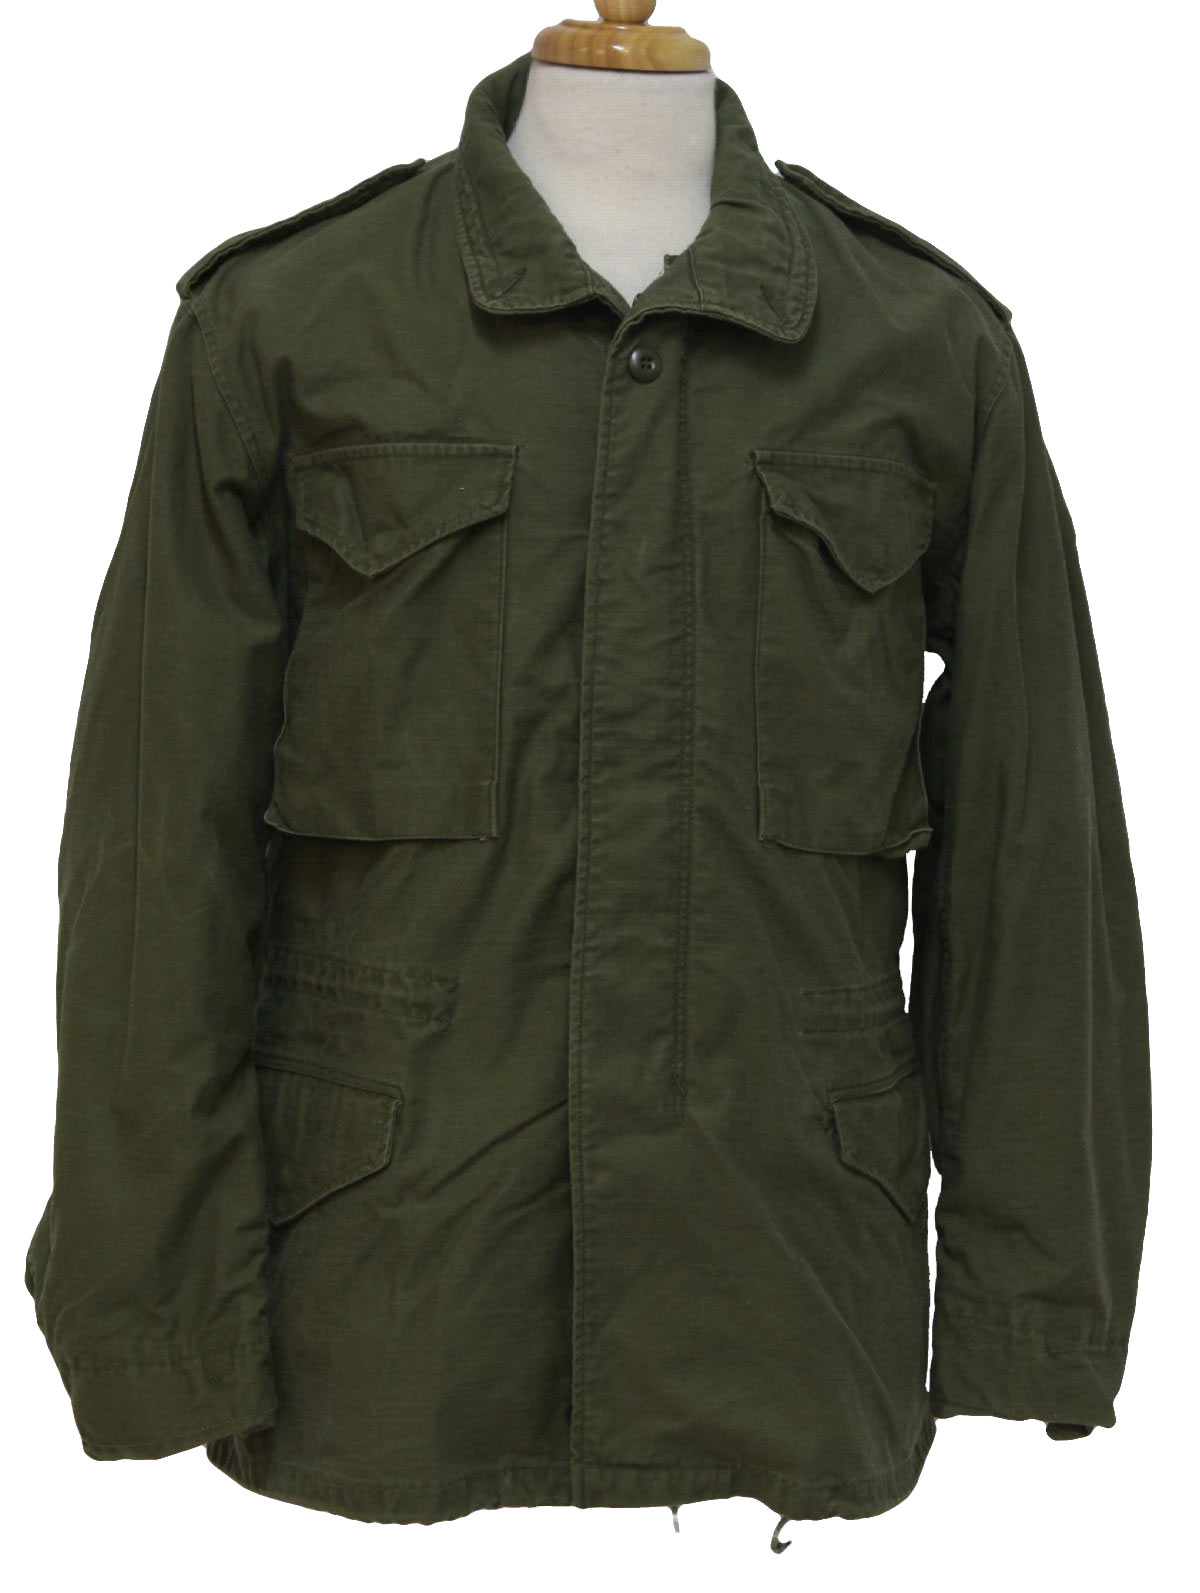 Collection Green Military Jacket Pictures - Reikian